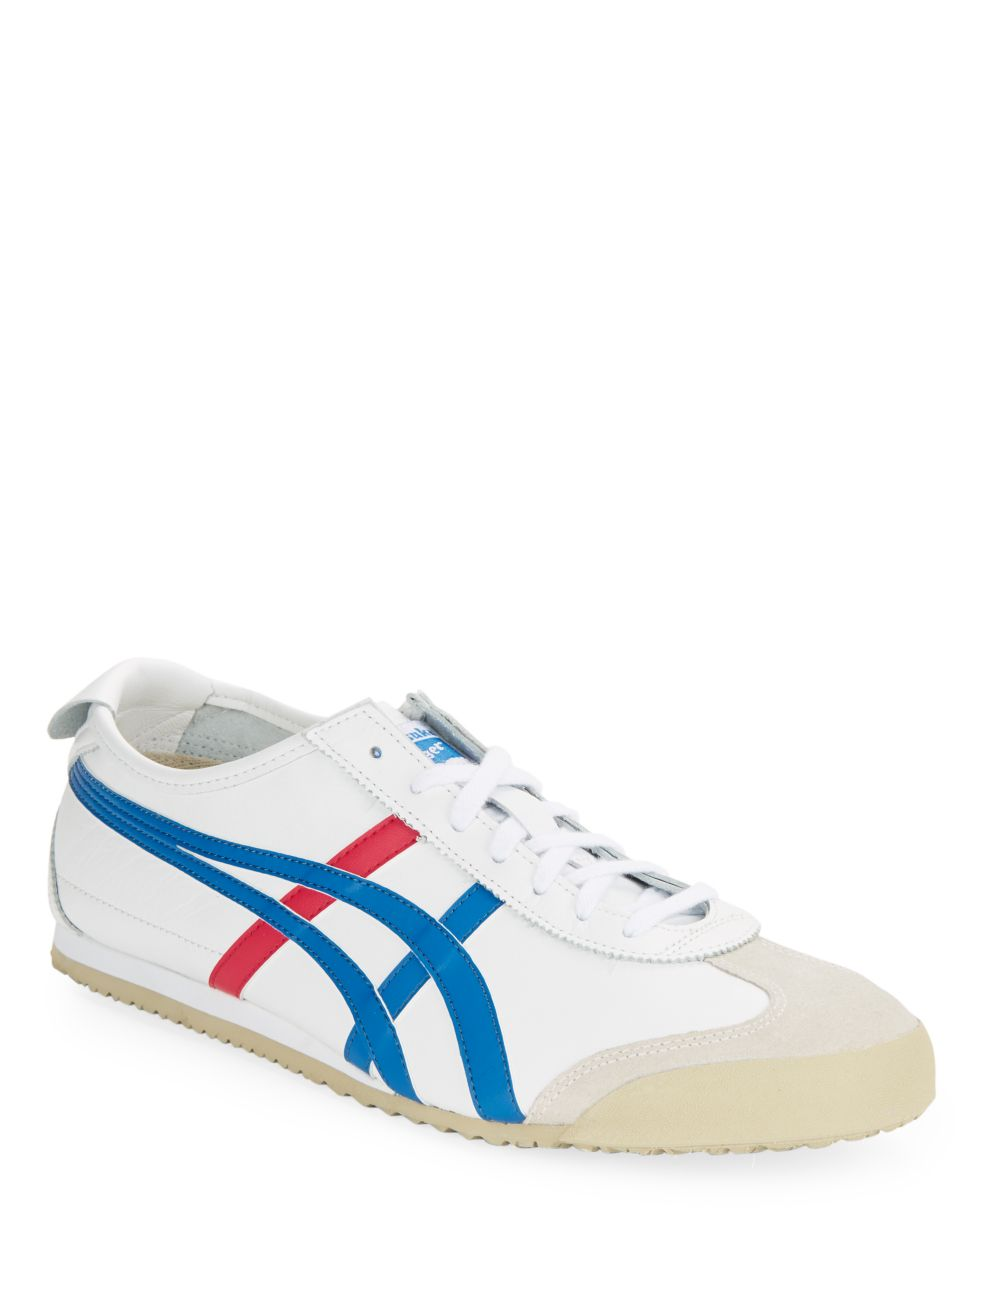 Asics Mexico 66 Leather Sneakers $30.59 after code love